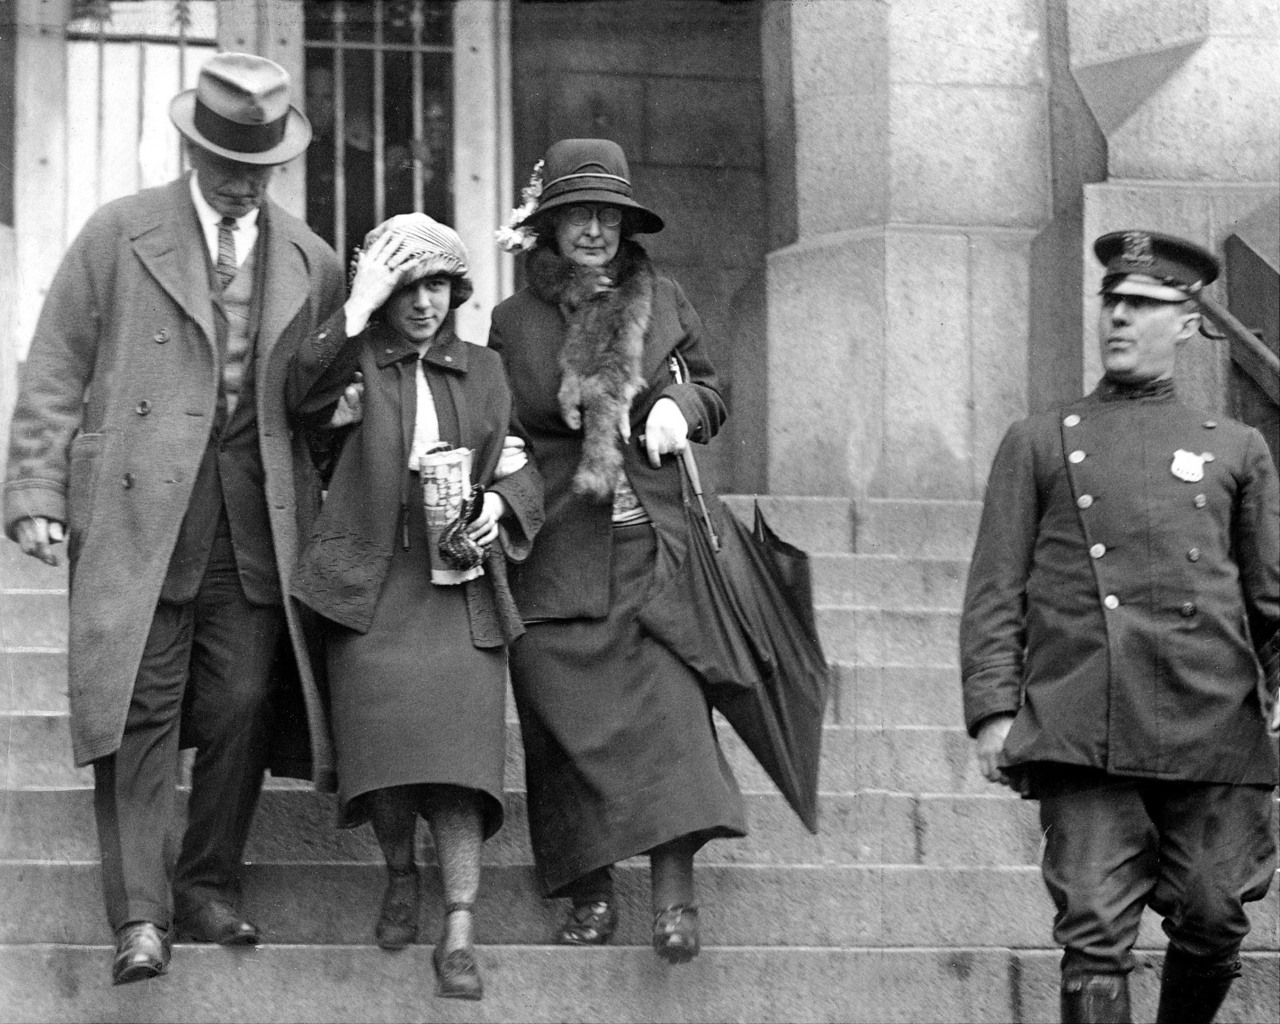 Celia Cooney, the infamous Bobbed Haired Bandit, was a symbolic figure of female empowerment in the 1920s. Here, she is seen leaving the courthouse.